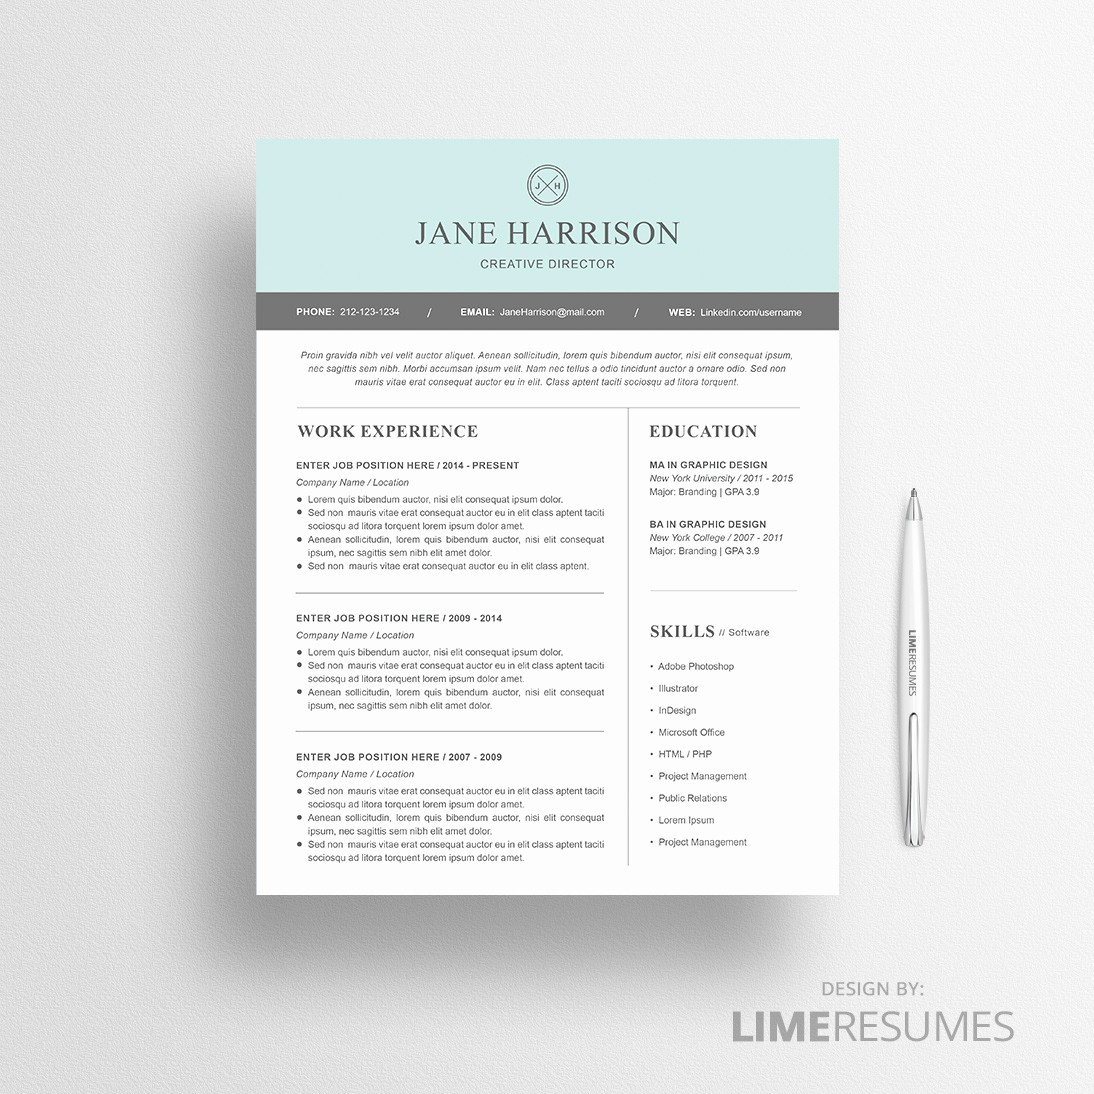 Ms Word Templates for Resume Inspirational Modern Resume Template for Microsoft Word Limeresumes